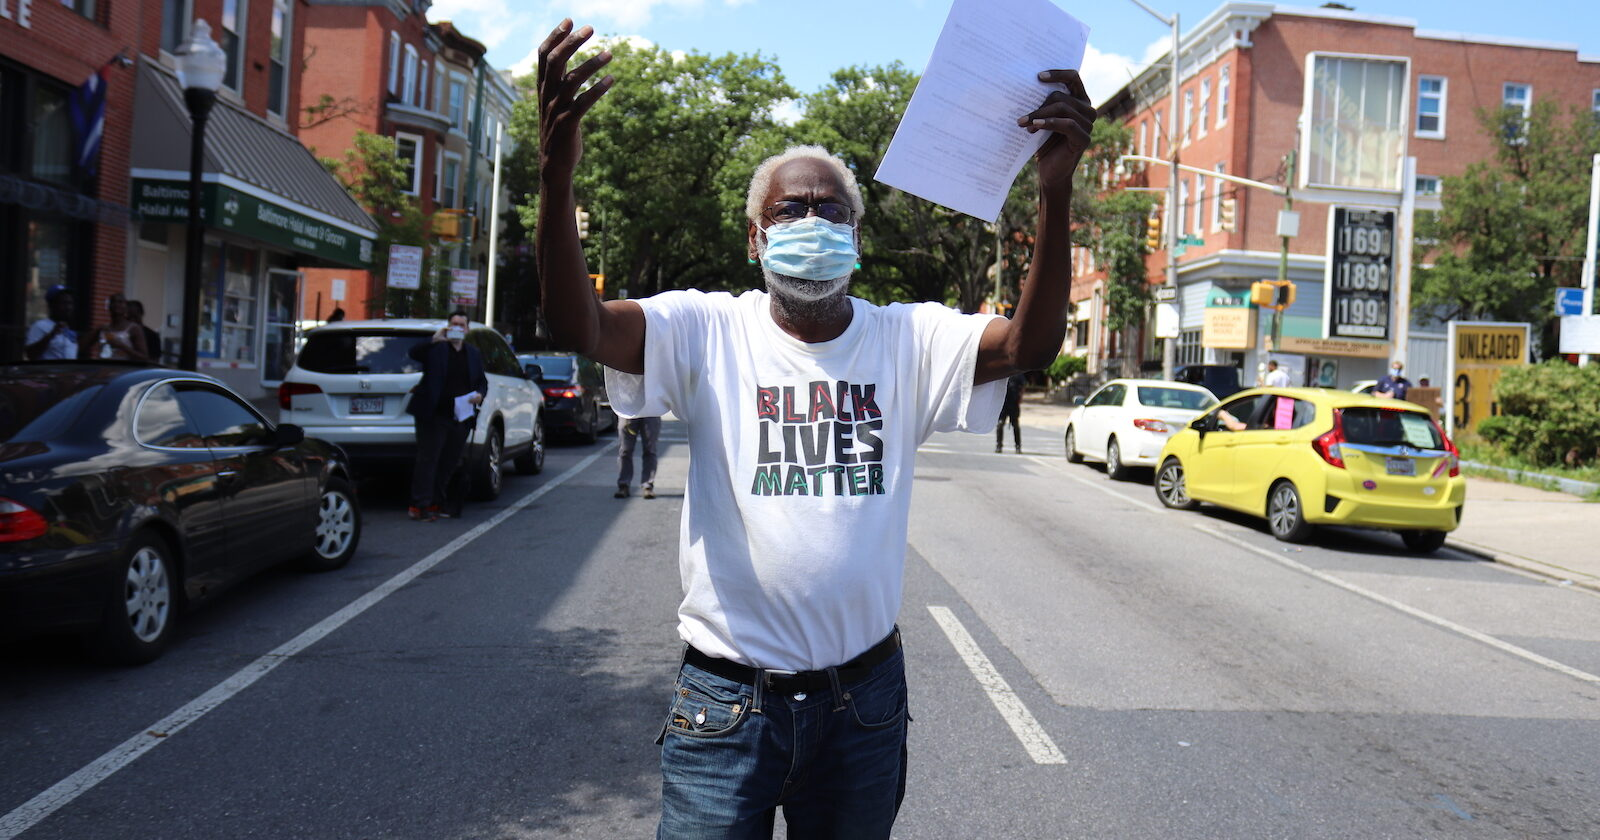 Man wearing black lives matter t-shirt walking down a street